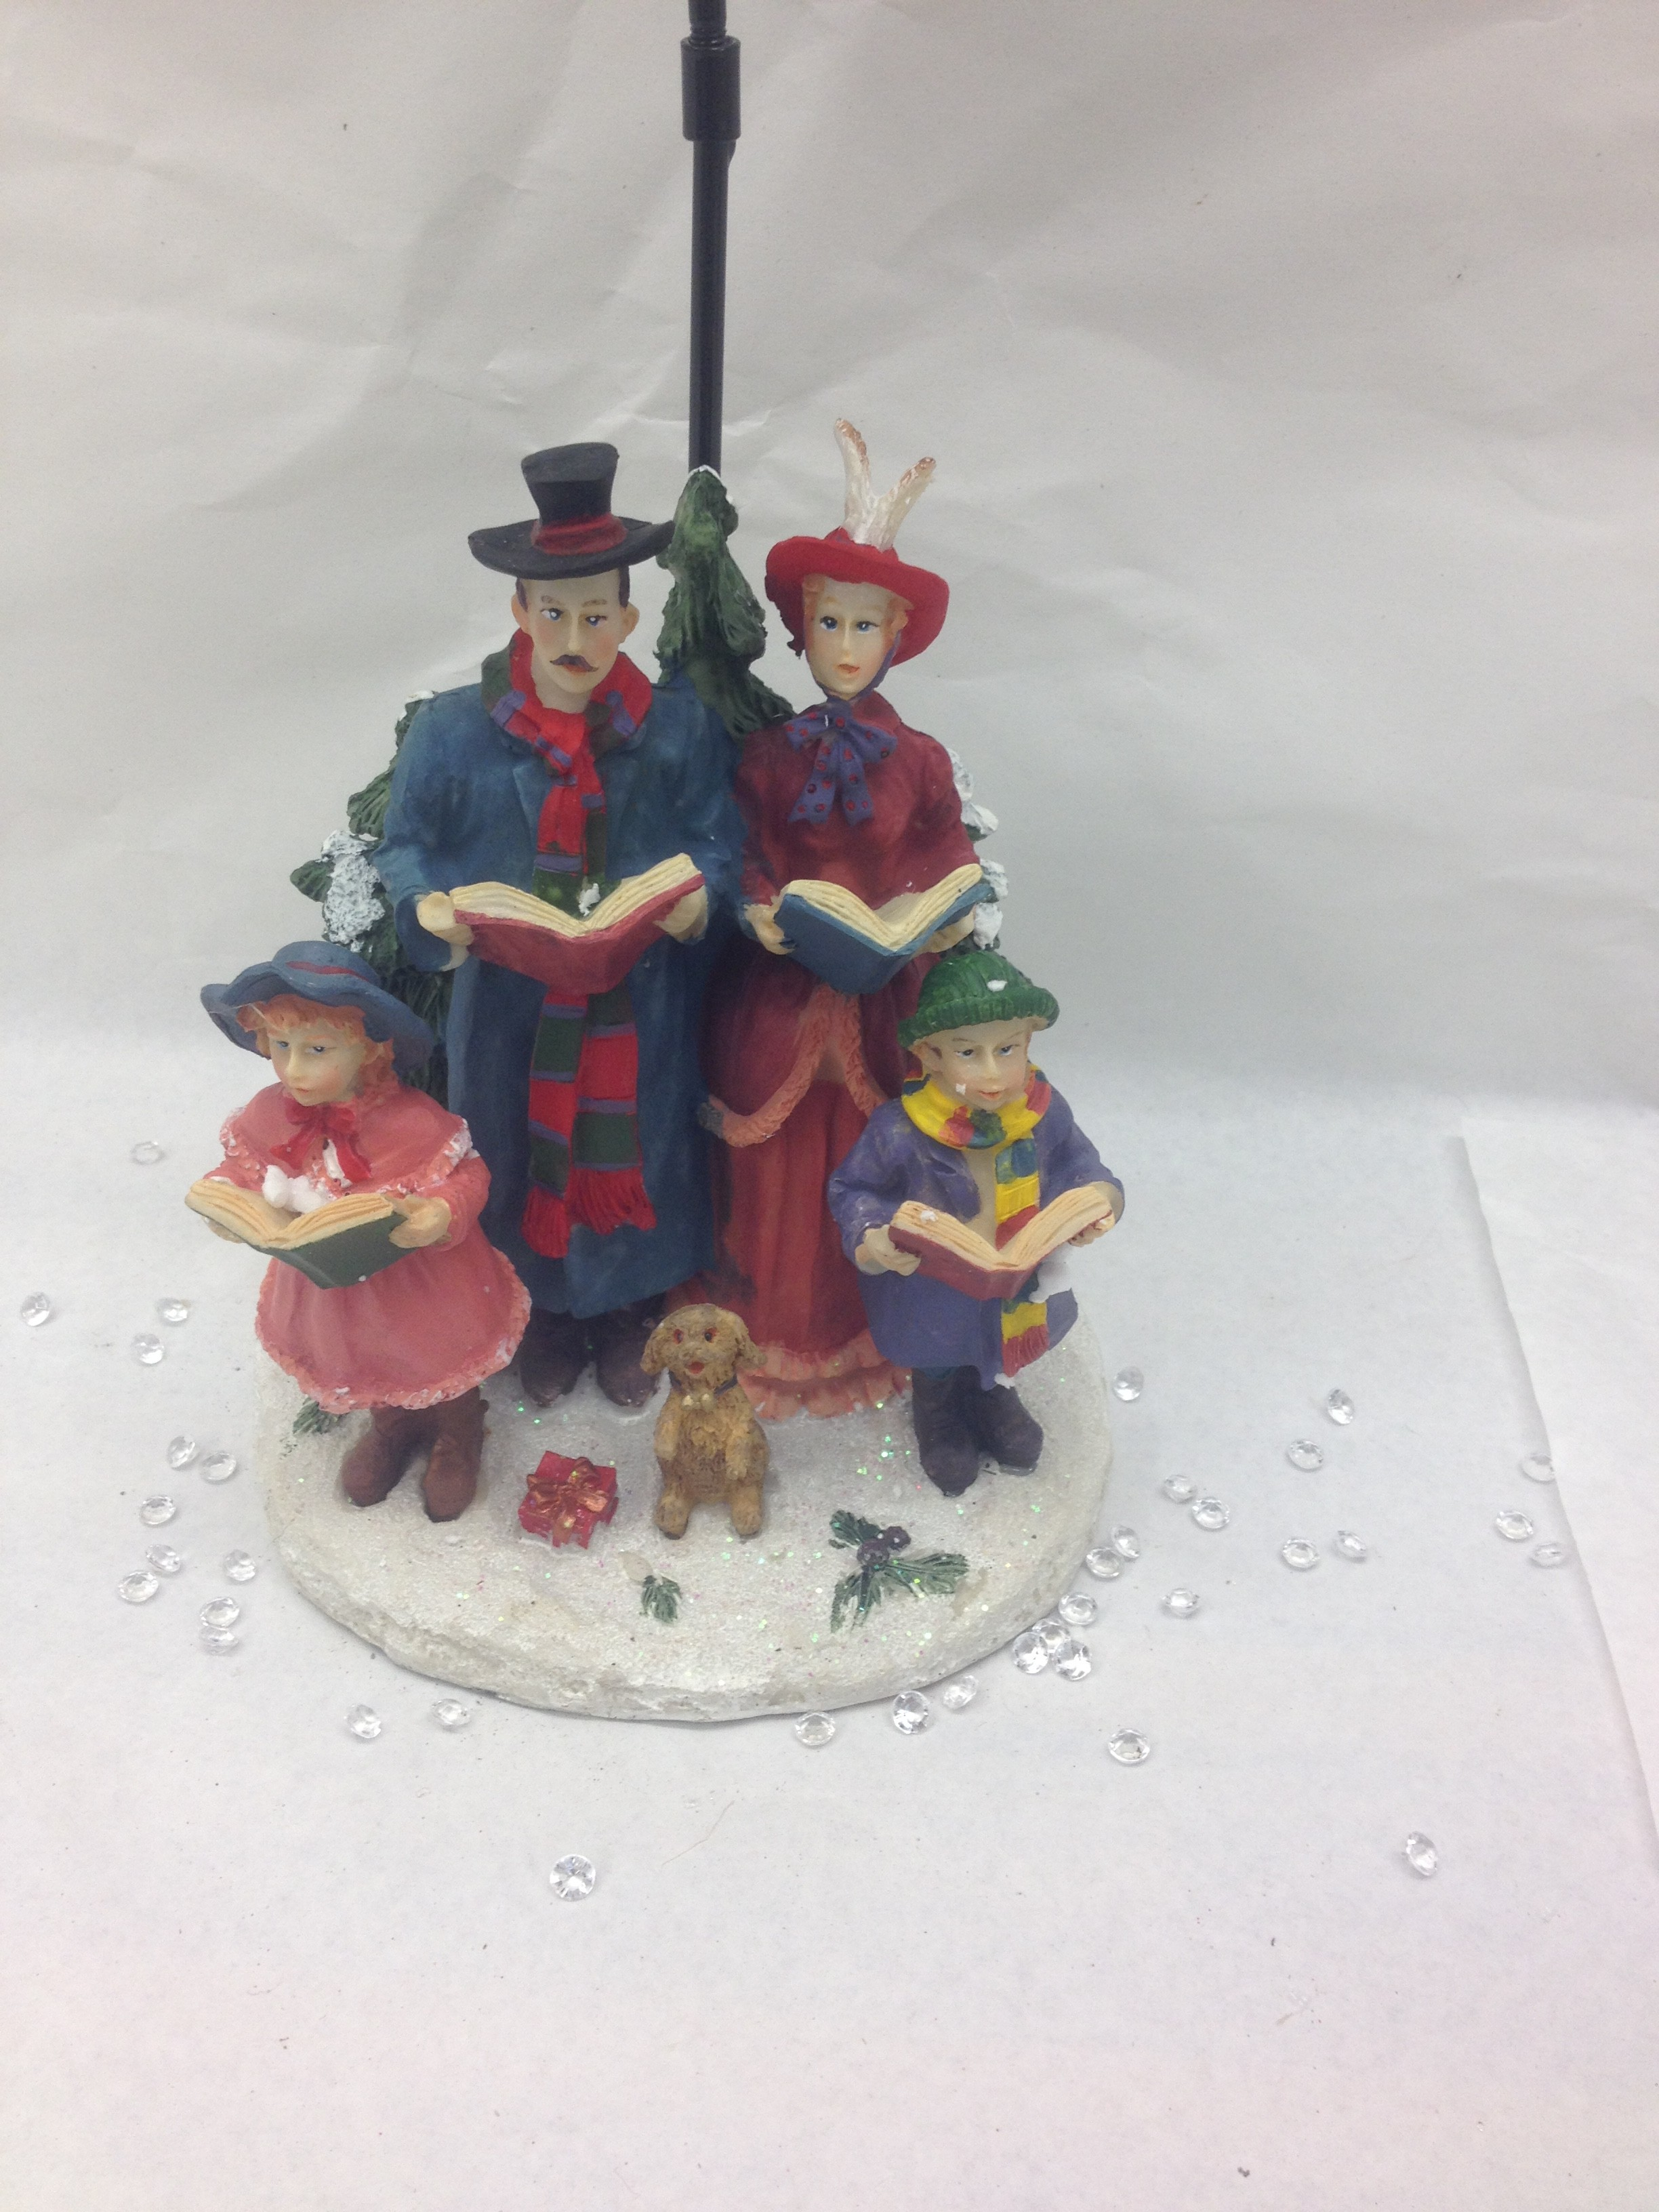 Resin Carol scene with street tealight holder